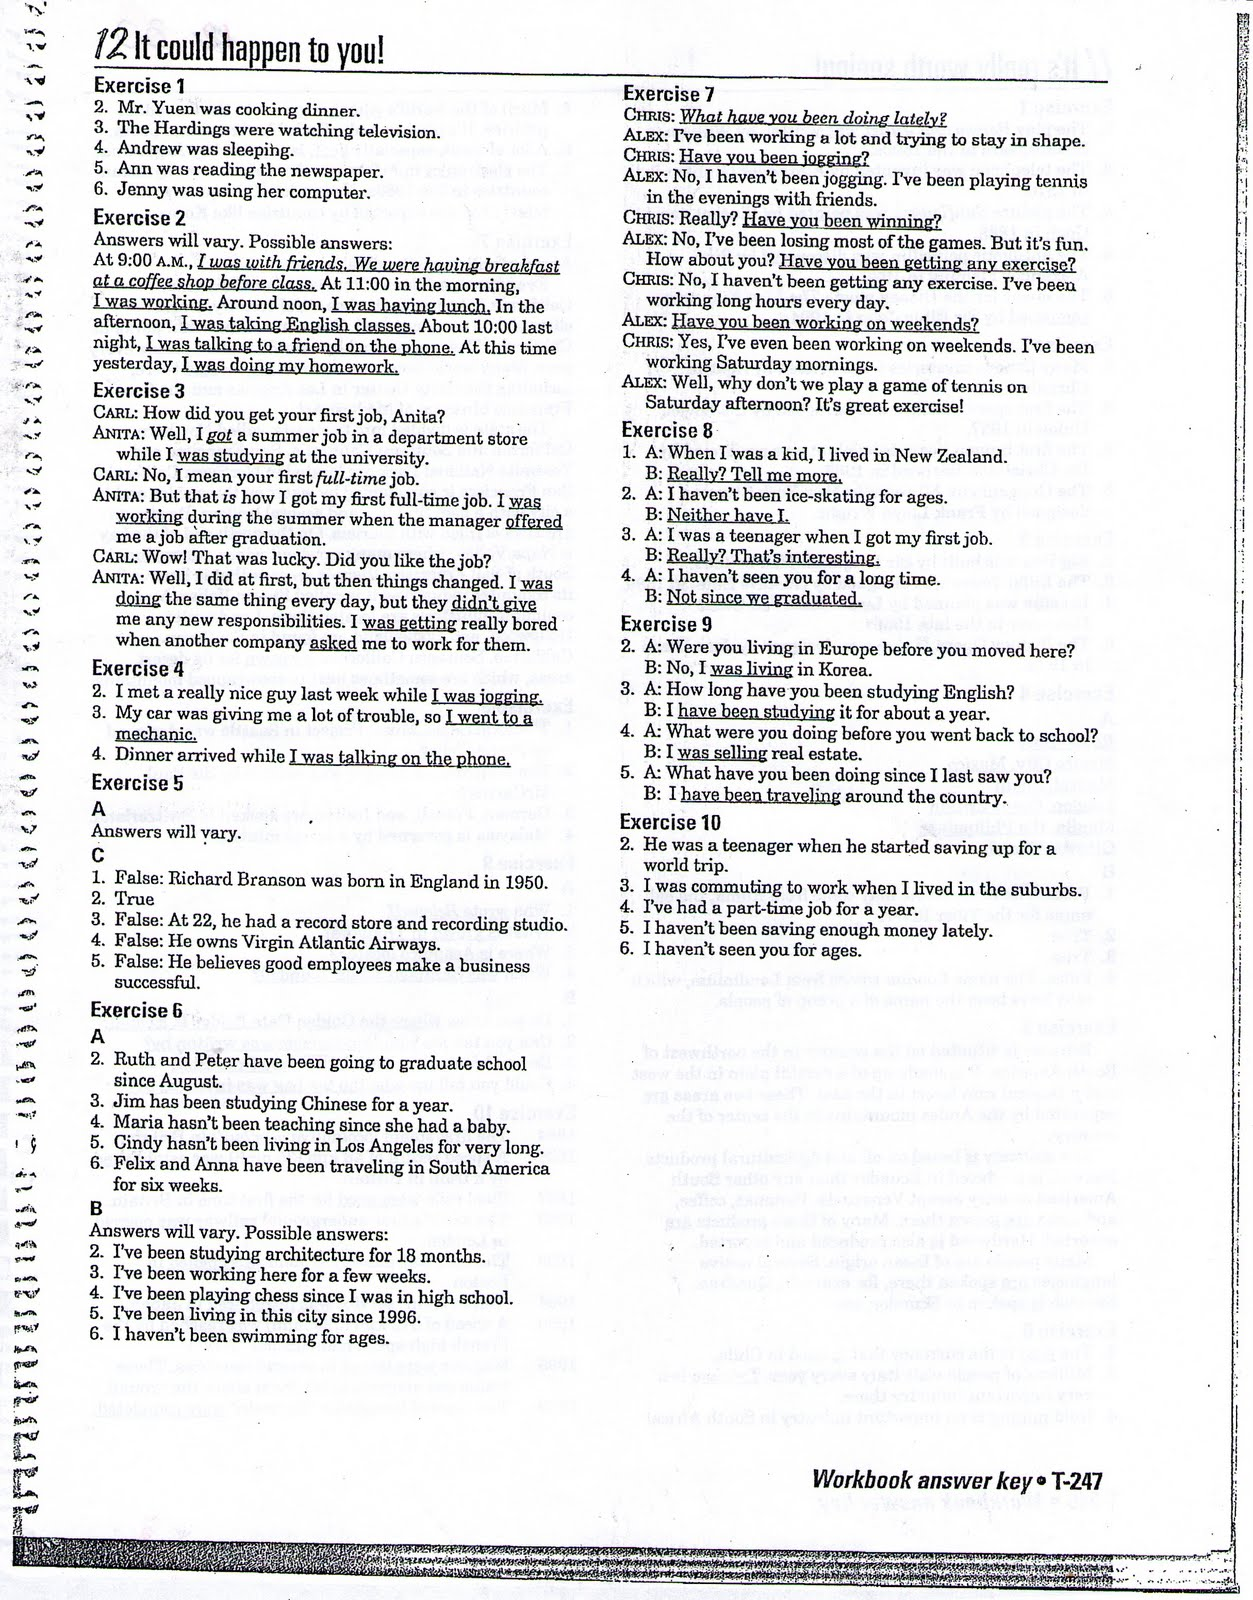 Interchange 2 (English Textbook): Workbook Answers, Unit 12